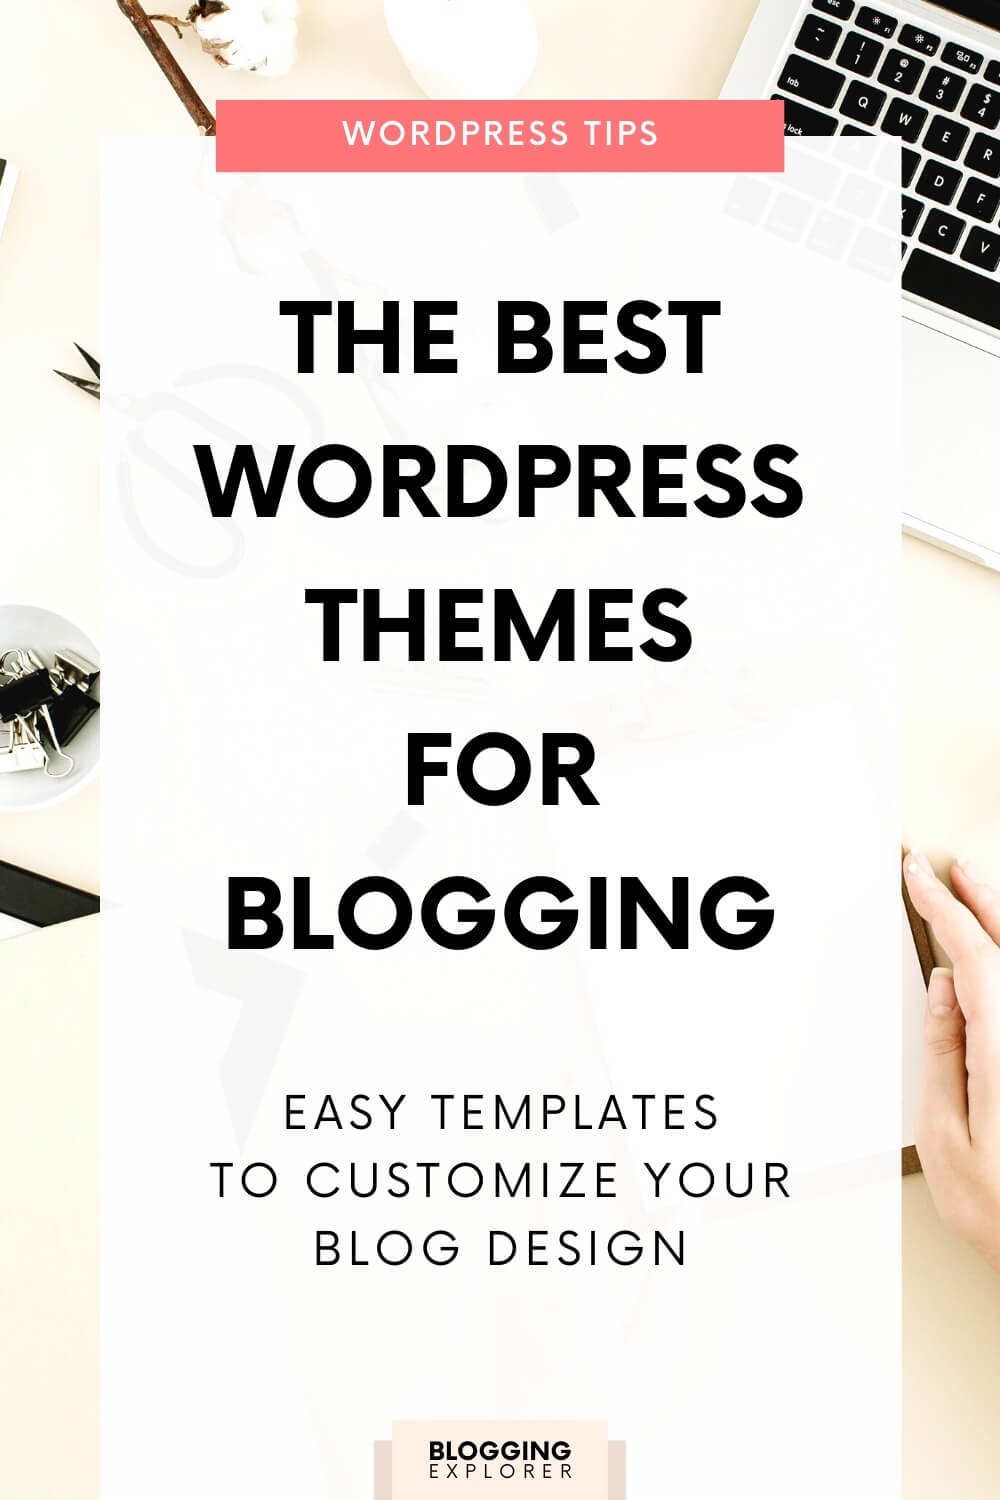 The best WordPress themes for blogging - Blogging Explorer